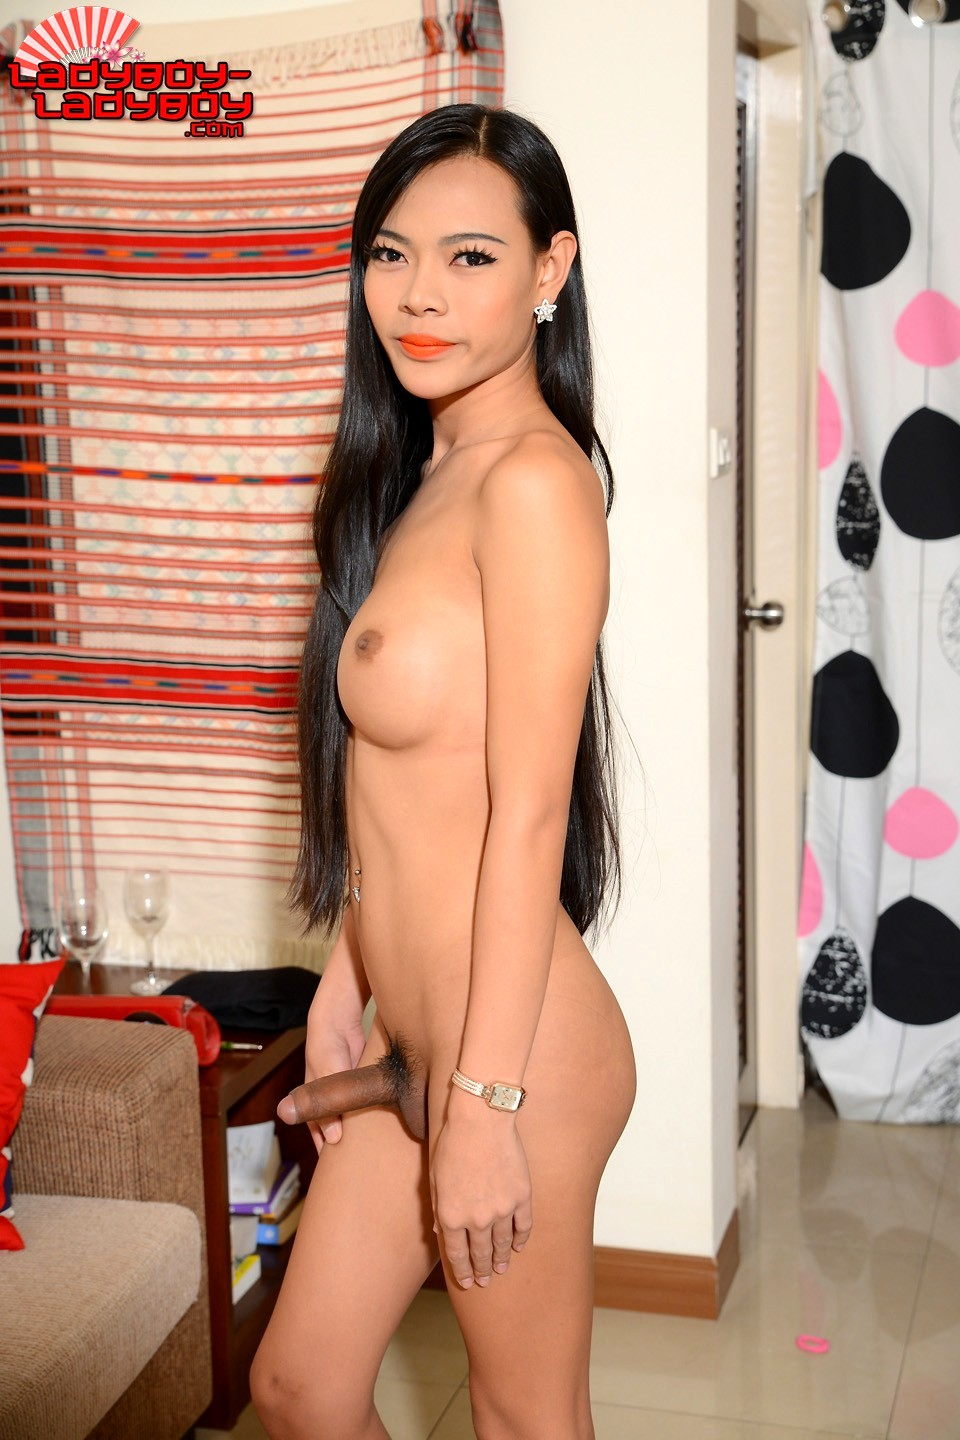 Monica Is 21 Years Old From Bangkok. Very Voluptuous And Desirable